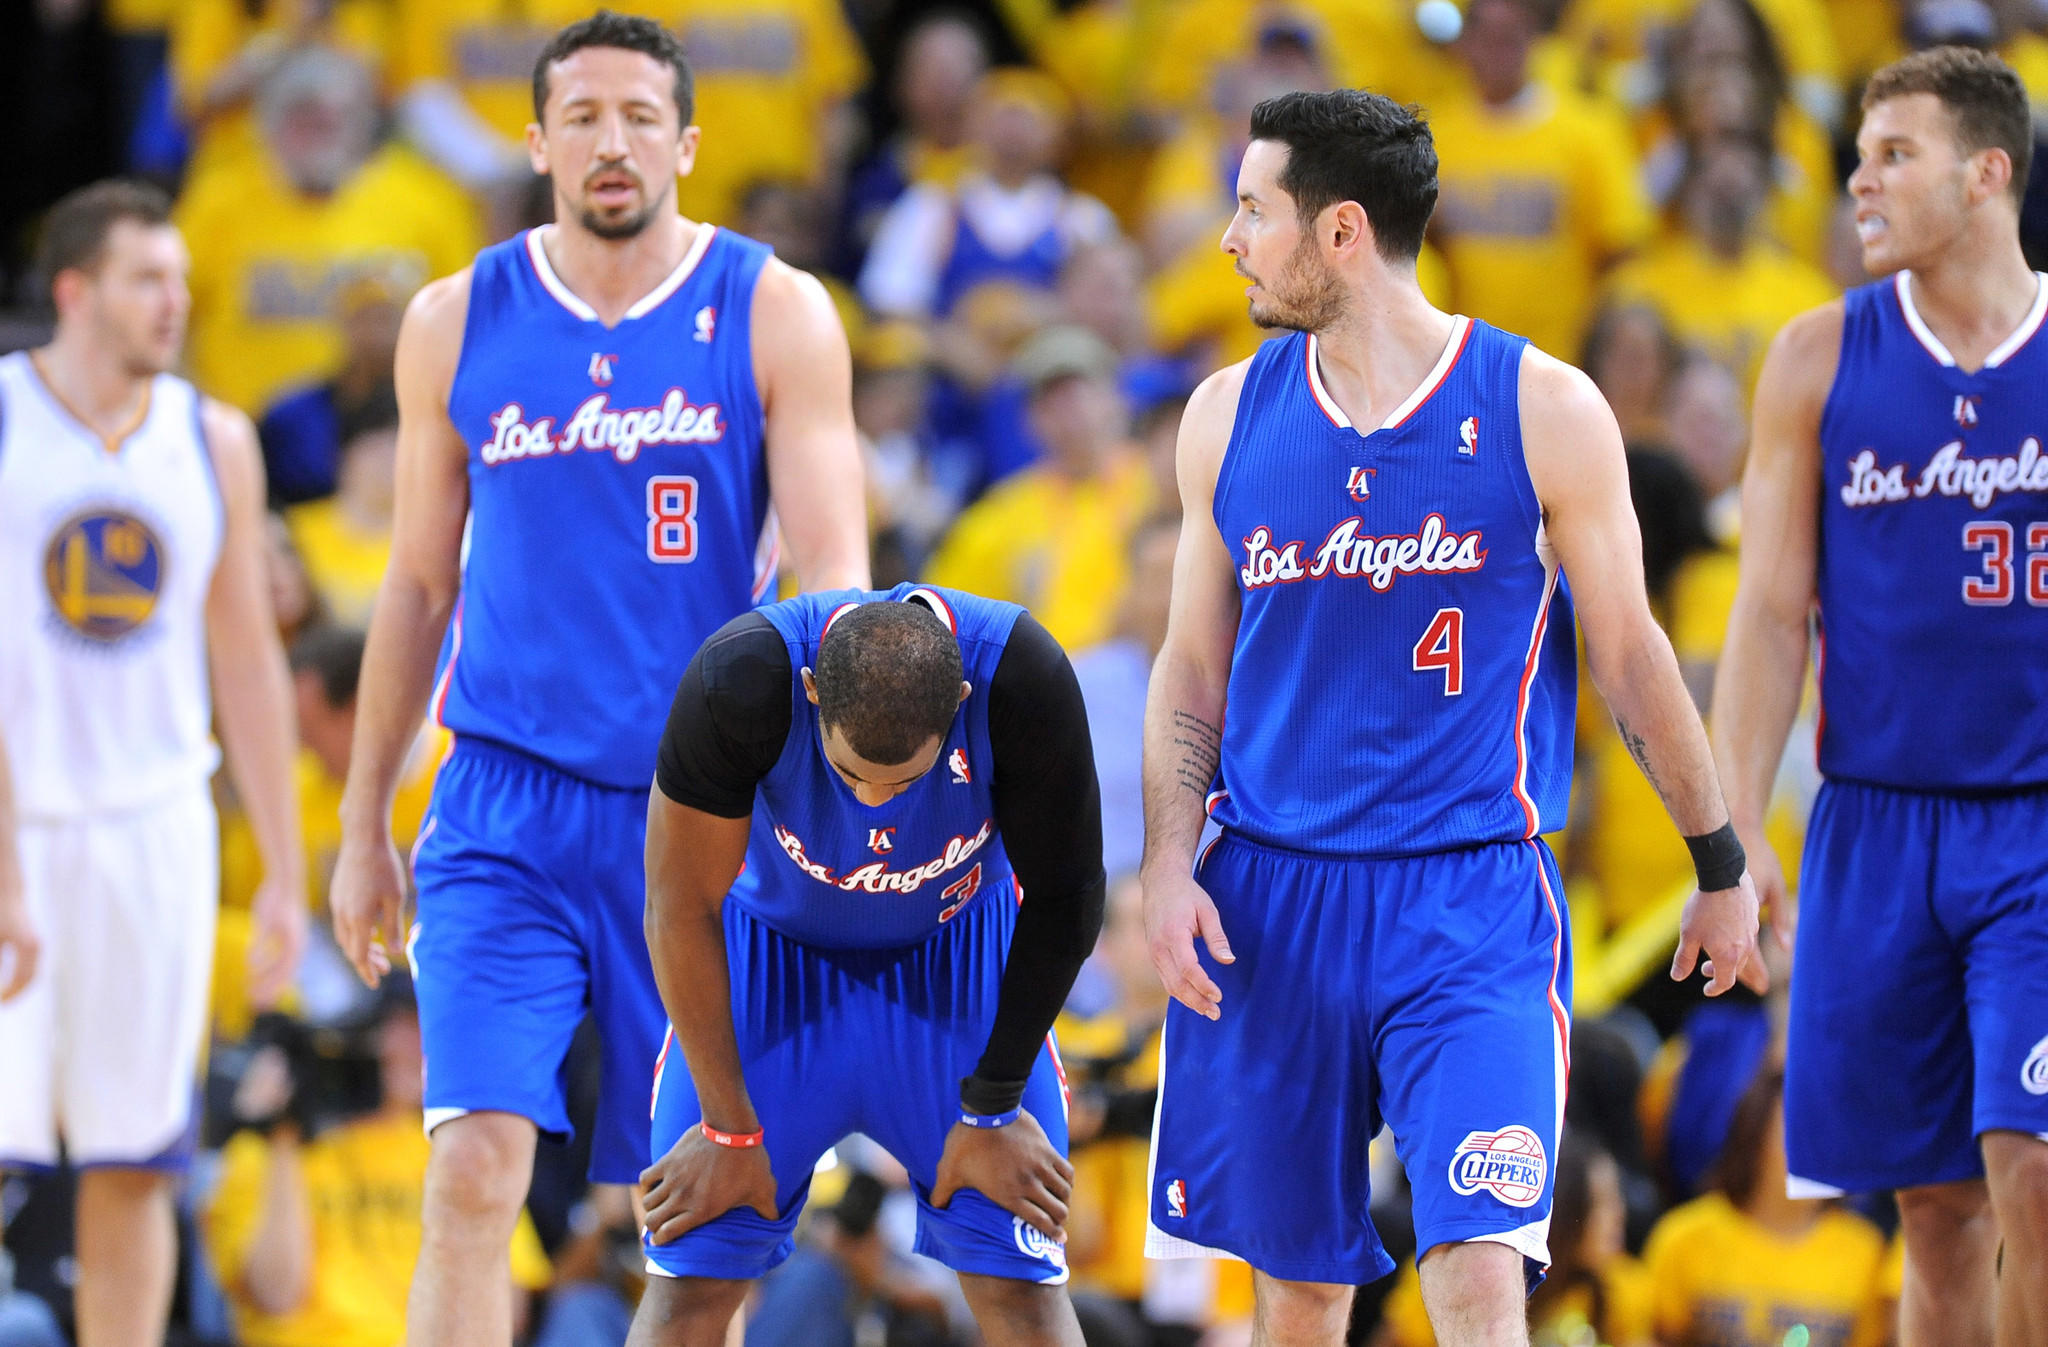 Clippers point guard Chris Paul, second left, catches his breath alongside teammates (from left to right) Hedo Turkoglu, J.J. Redick and Blake Griffin following a turnover during the Clippers' 118-97 loss to the Golden State Warriors in Game 4 of the Western Conference quarterfinals.